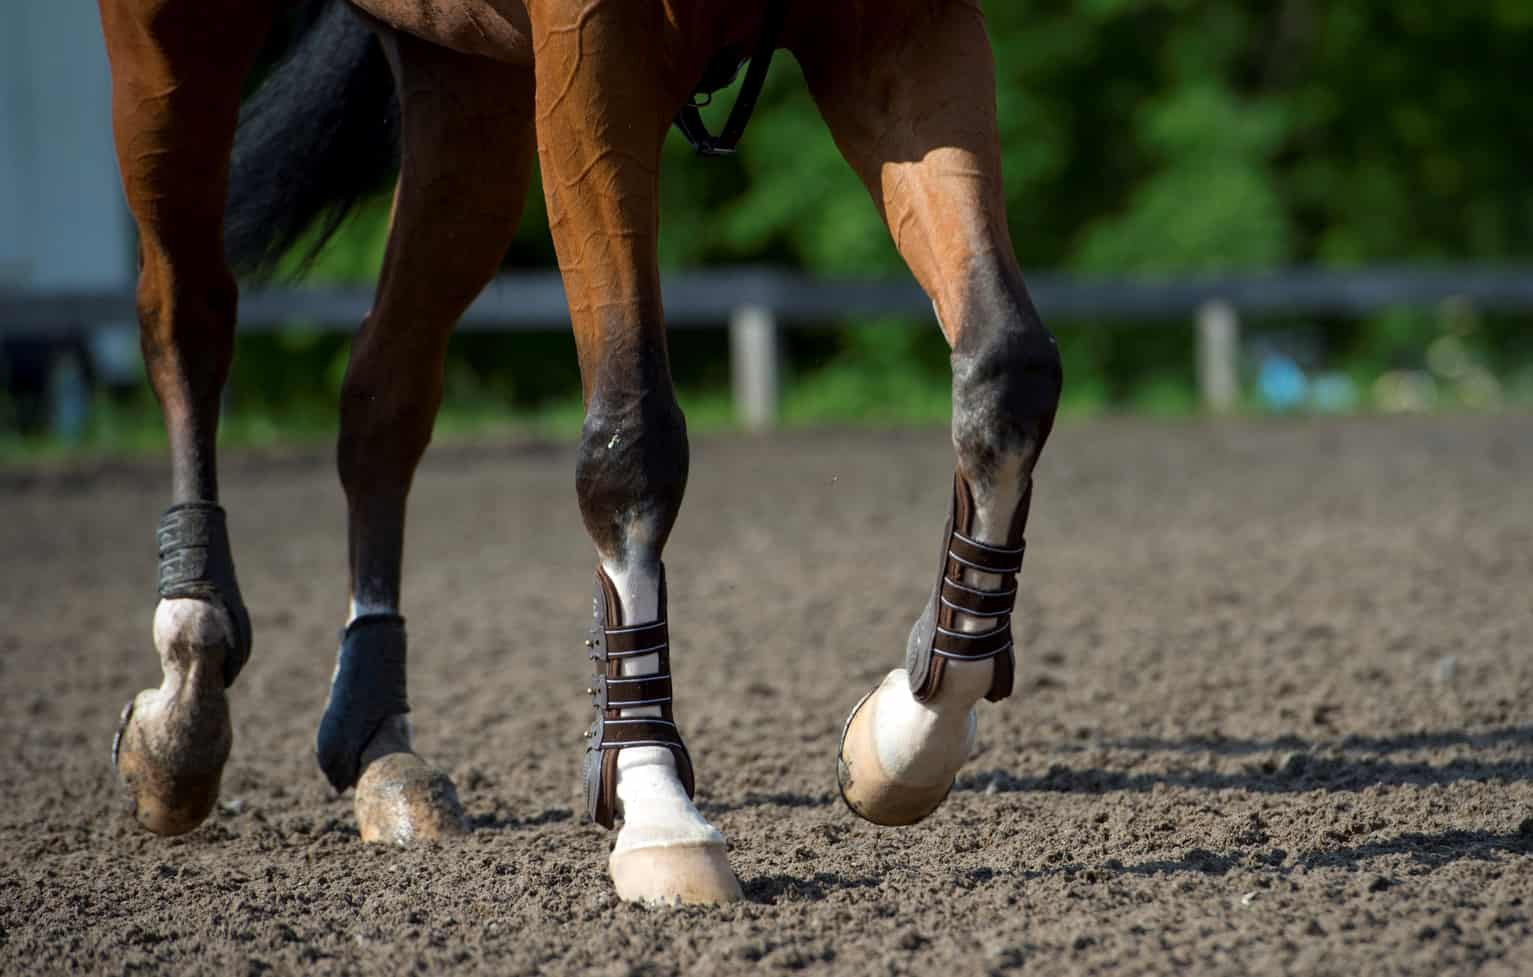 Early-Stage Equine OA: Vets Consider 2.5% Polyacrylamide Gel Treatment